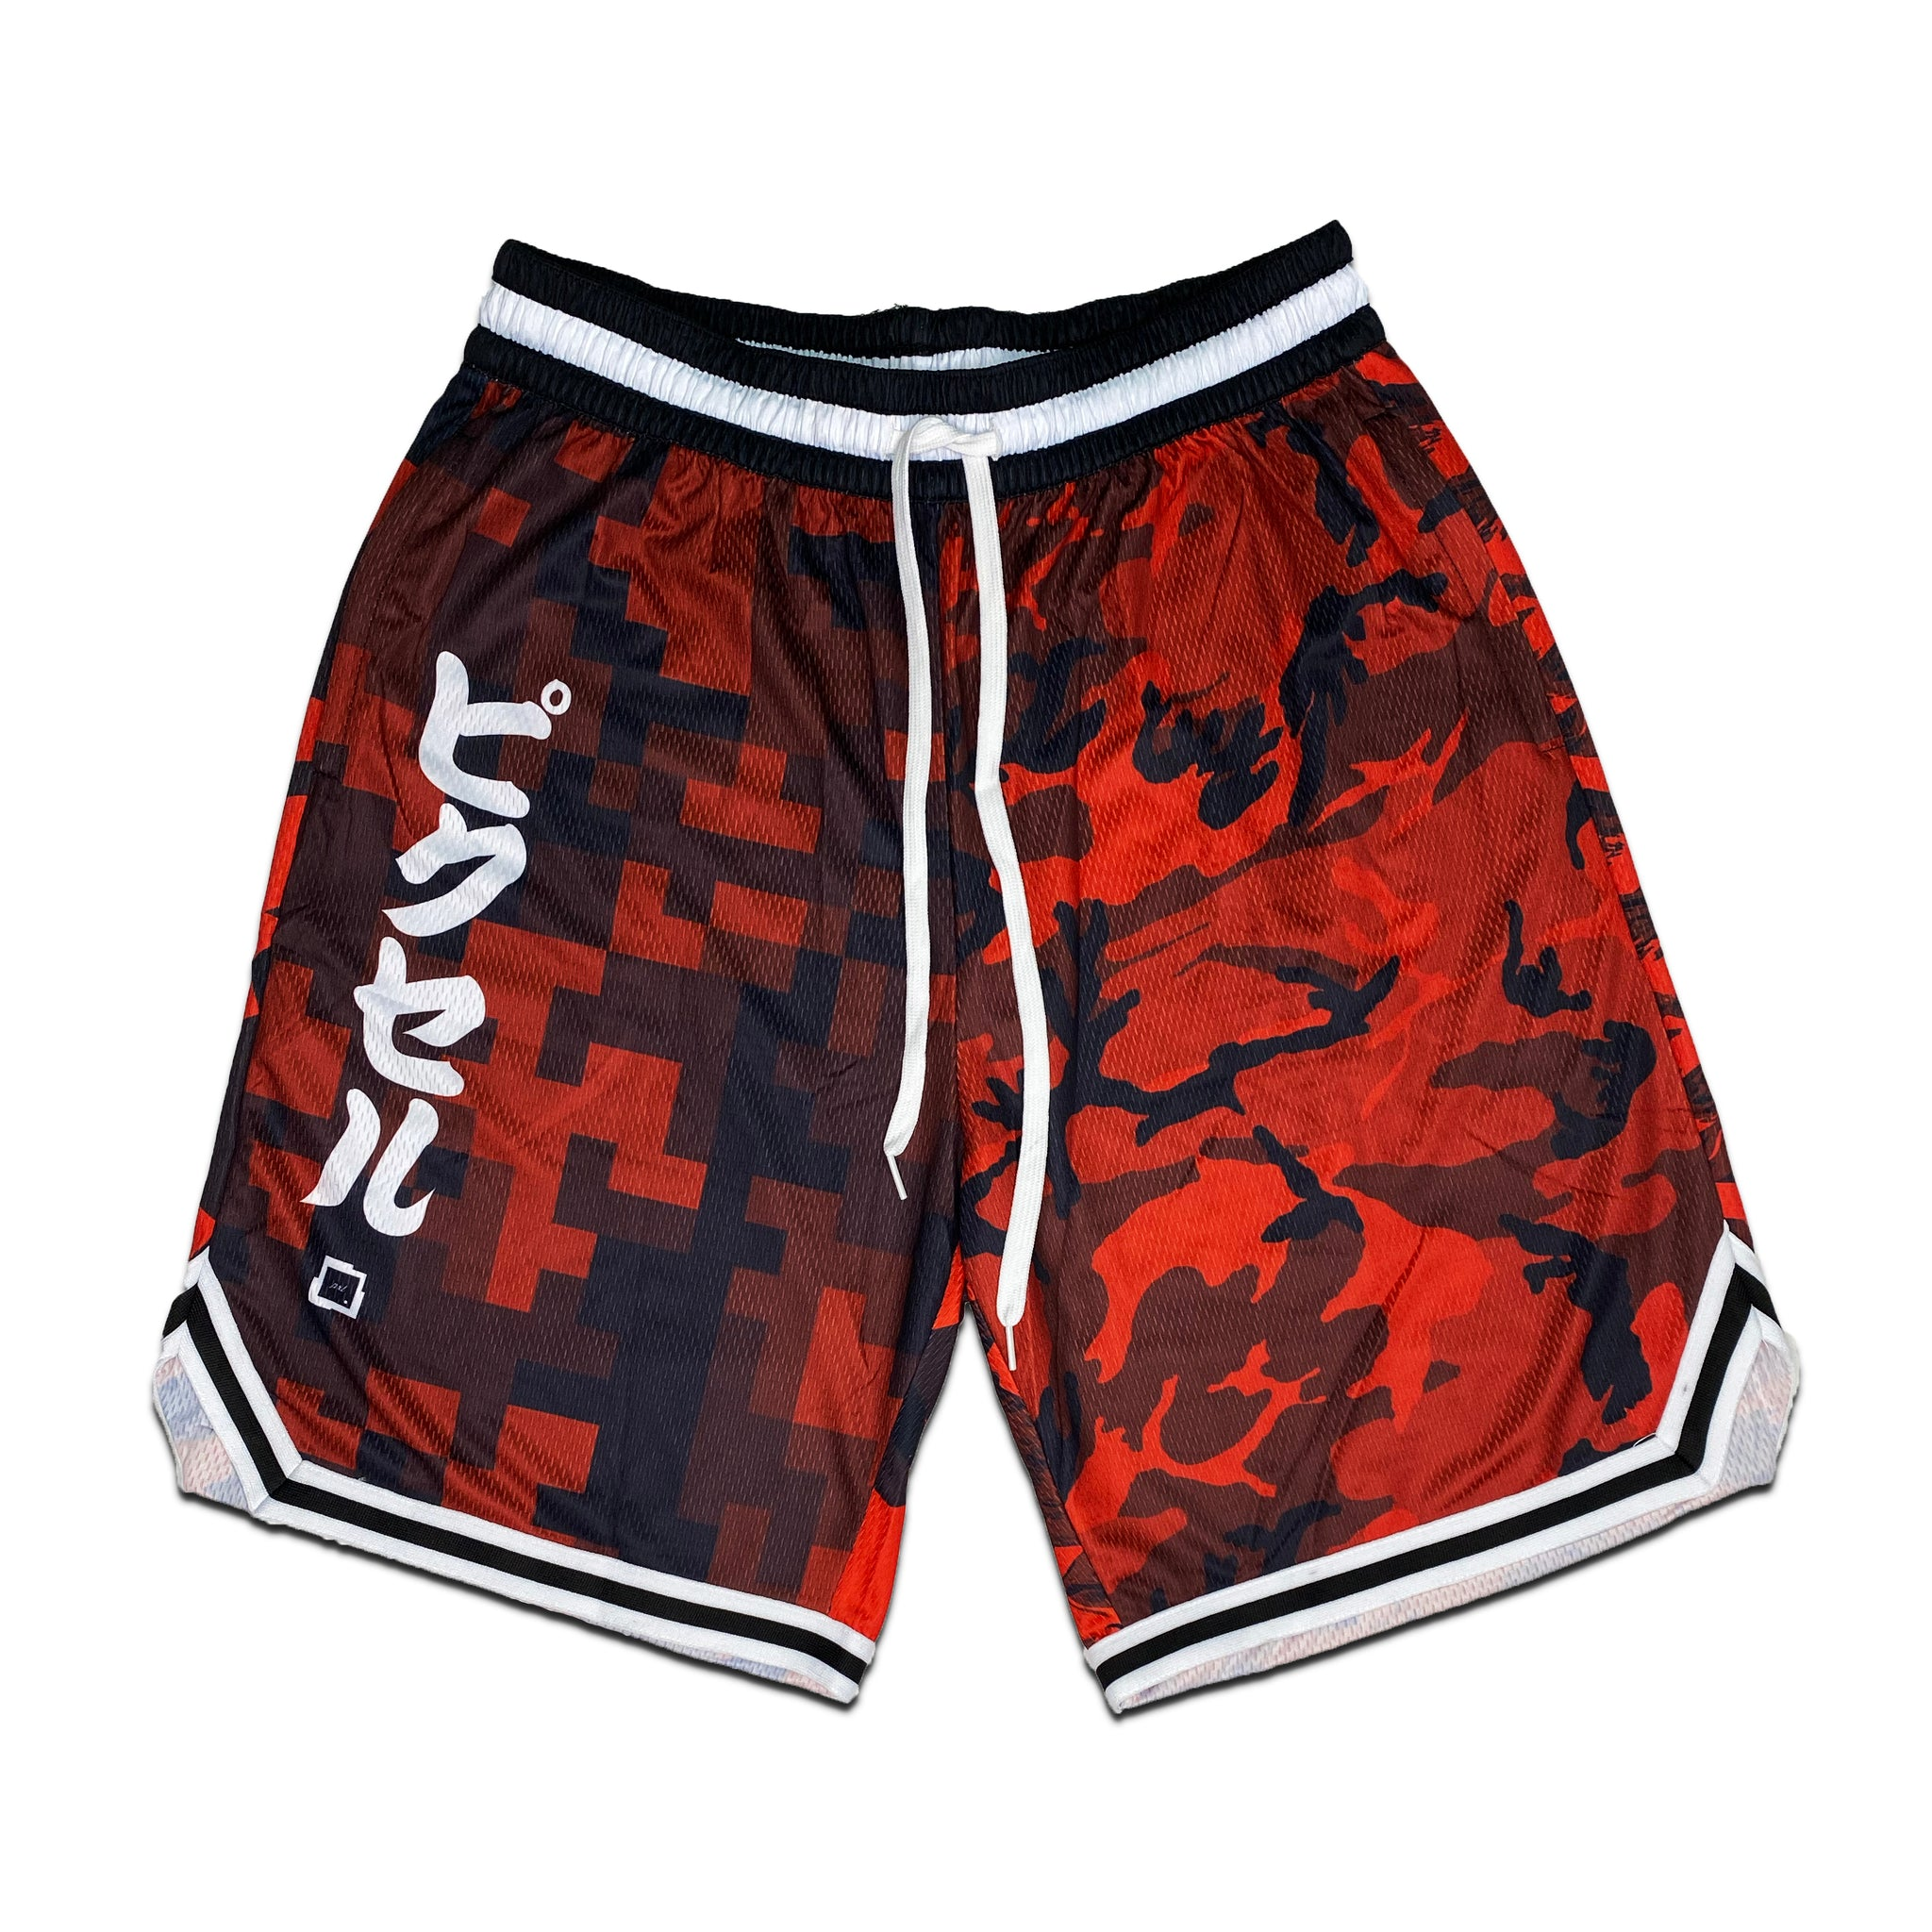 PXL Quad-Camo Mesh Basketball Shorts - Red